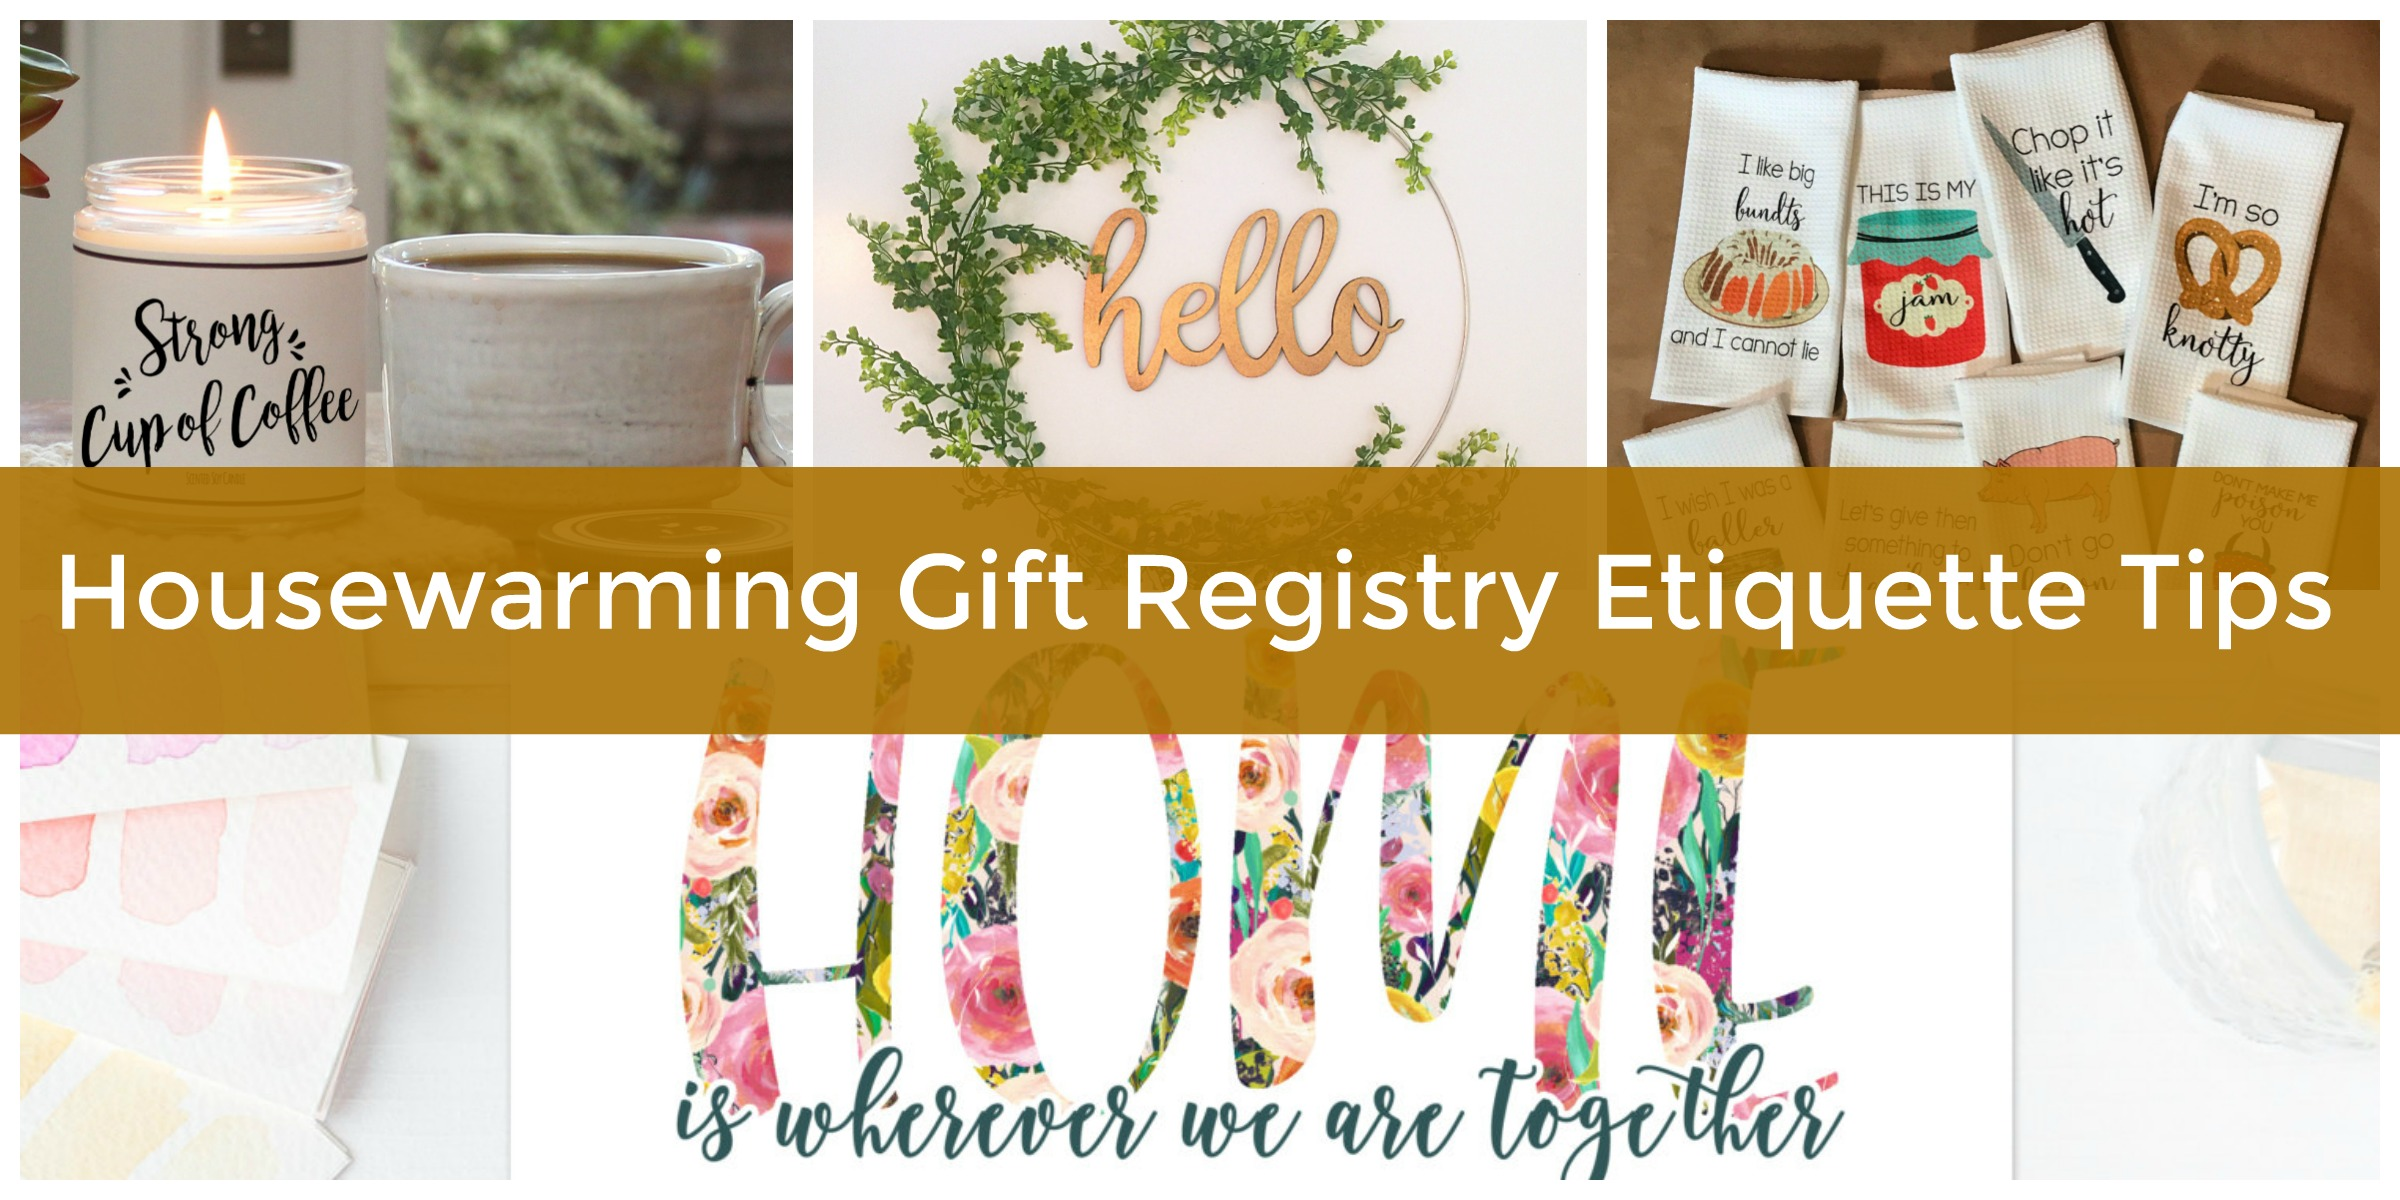 Housewarming Gift Registry Etiquette: The Do's and Don'ts of a New Home Wish List